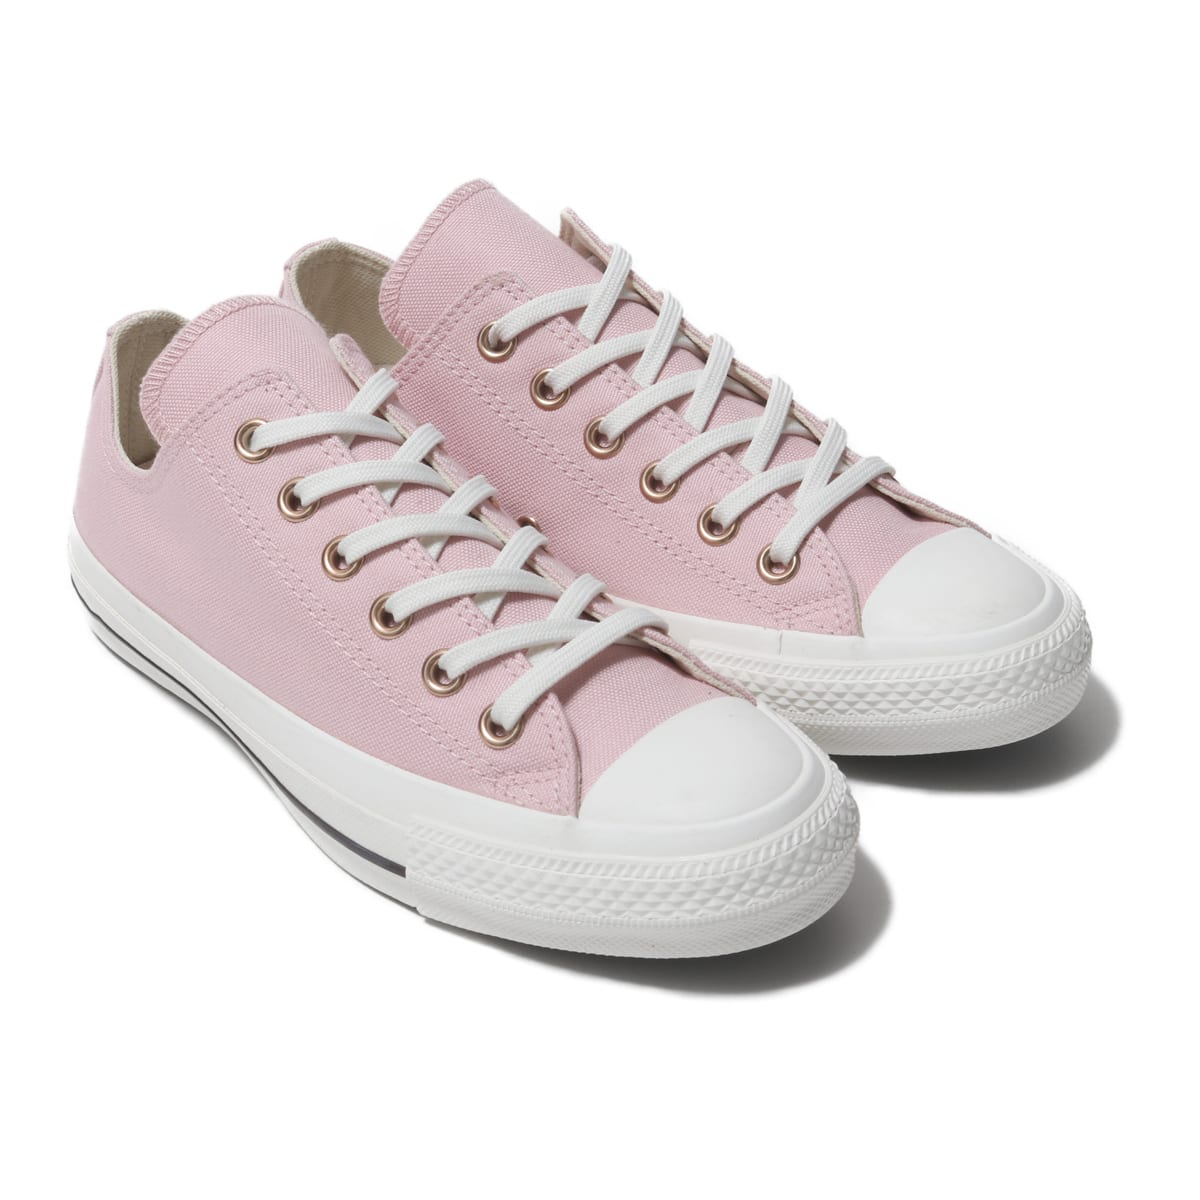 CONVERSE ALL STAR 100 PKG COLORS OX PINK 19FA-S_photo_large